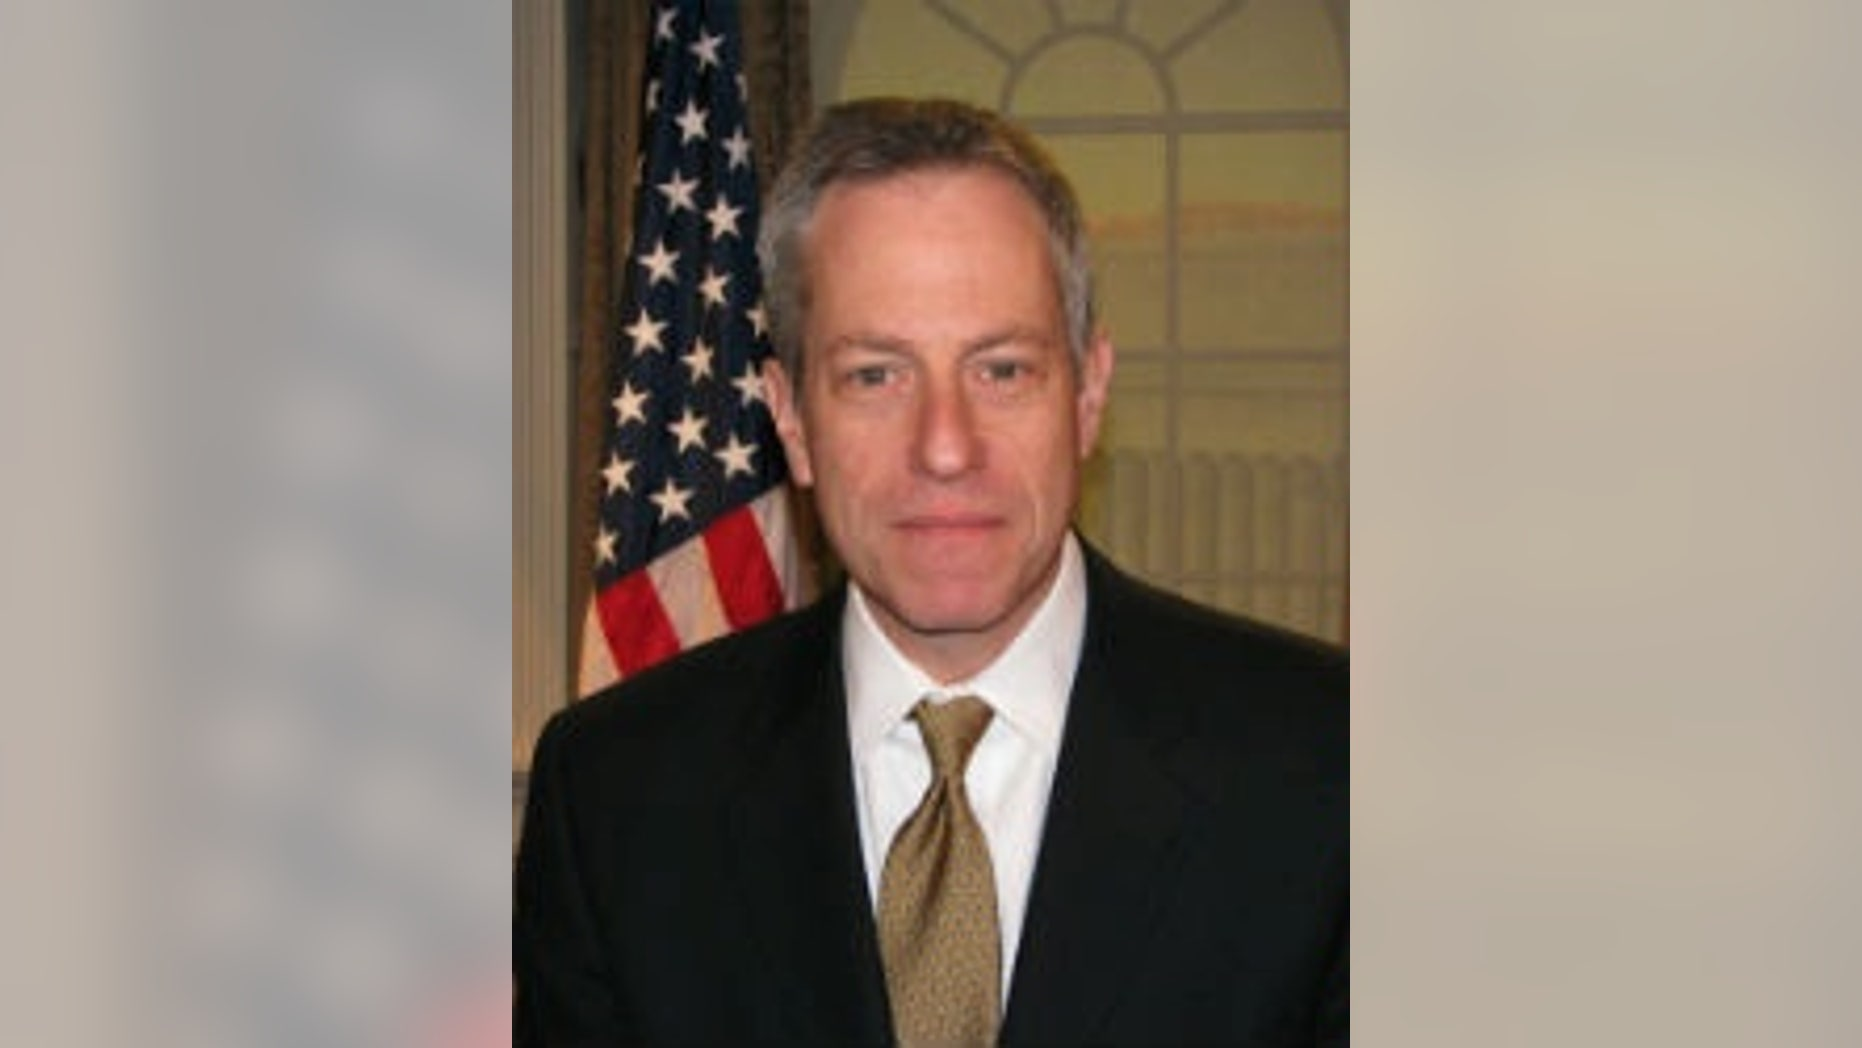 This undated image shows Michael Ratney, the current U.S. Special Envoy for Syria.